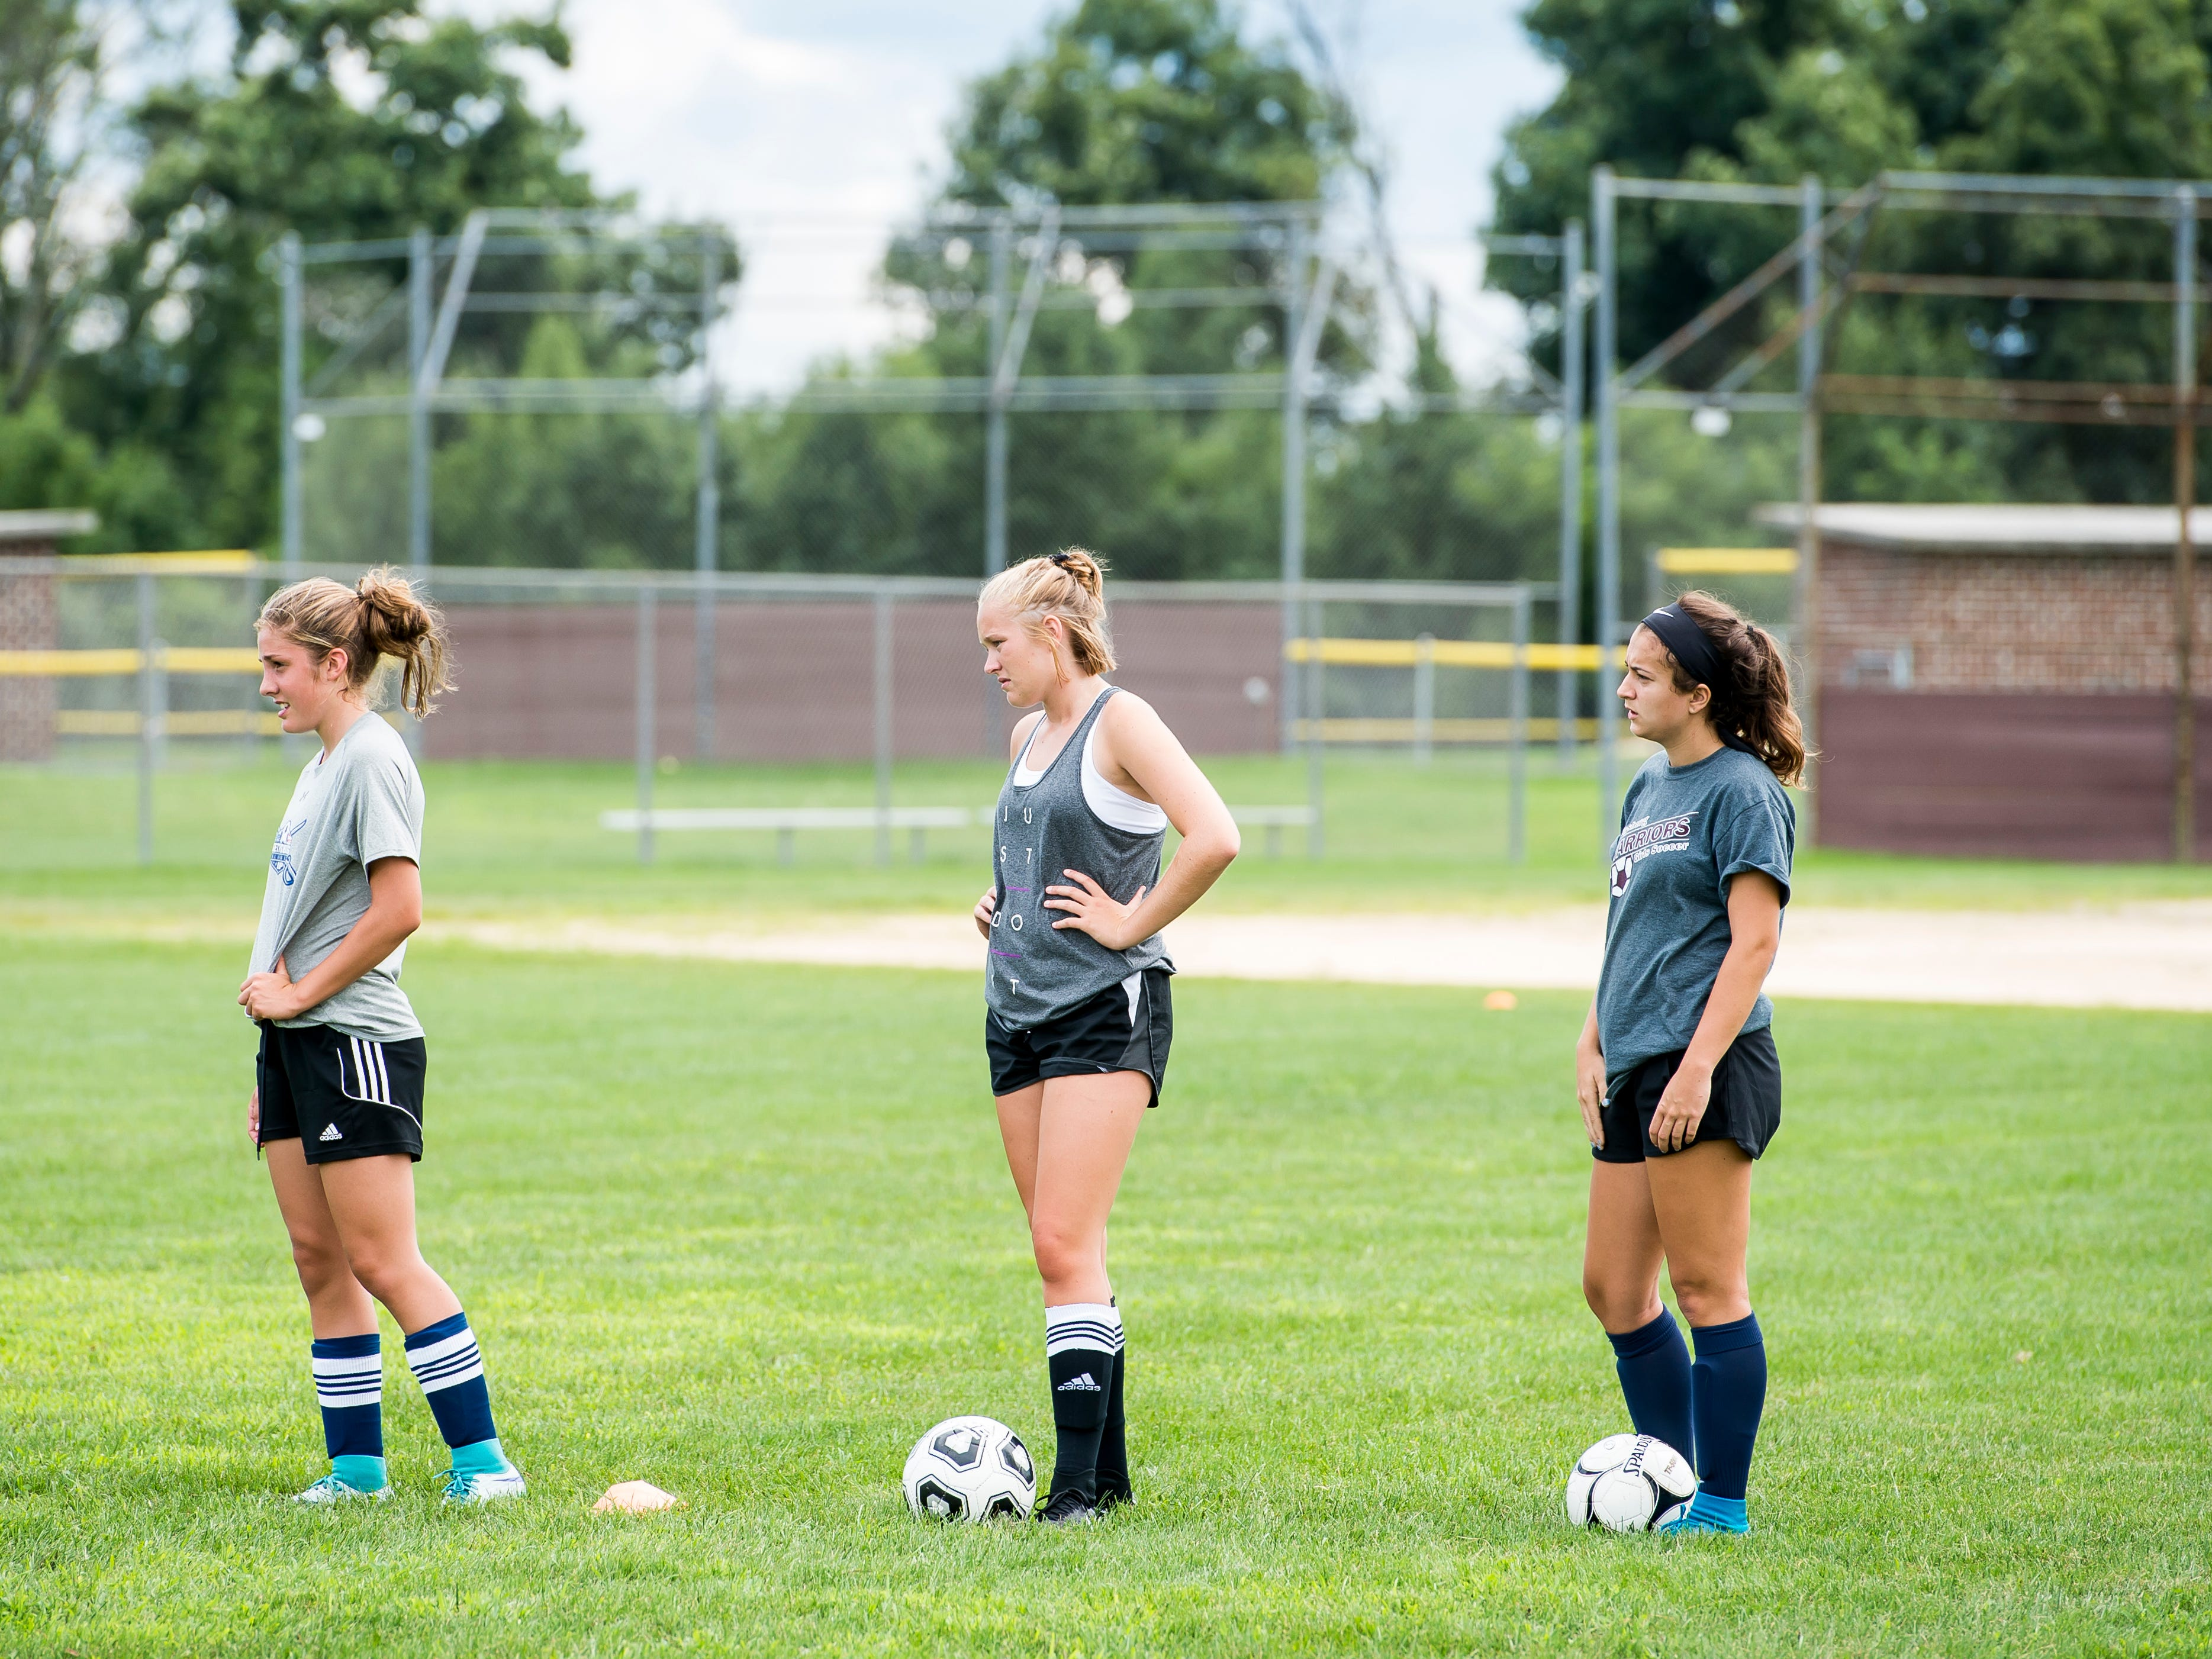 (From left) Gettysburg's Rachel McKinney, Lily Crowner and Olivia Sica listen to a coach during the first day of fall sports practice on Monday, August 13, 2018.